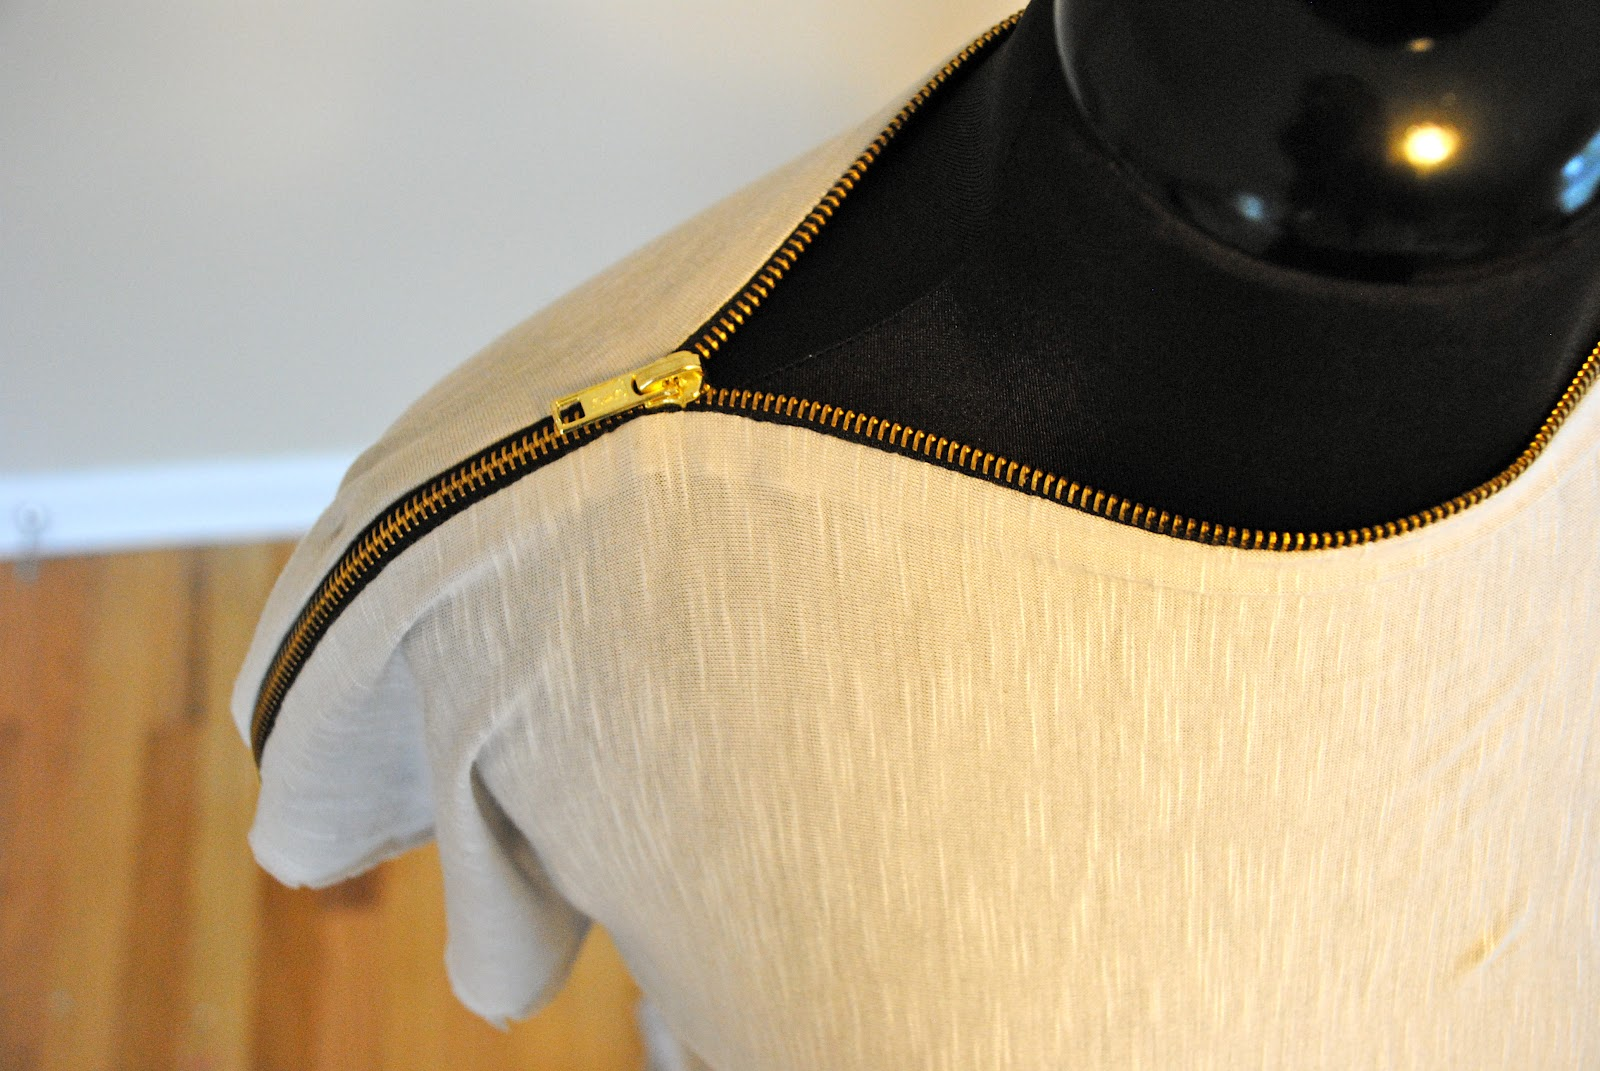 A Zipper Blouse from a T-shirt